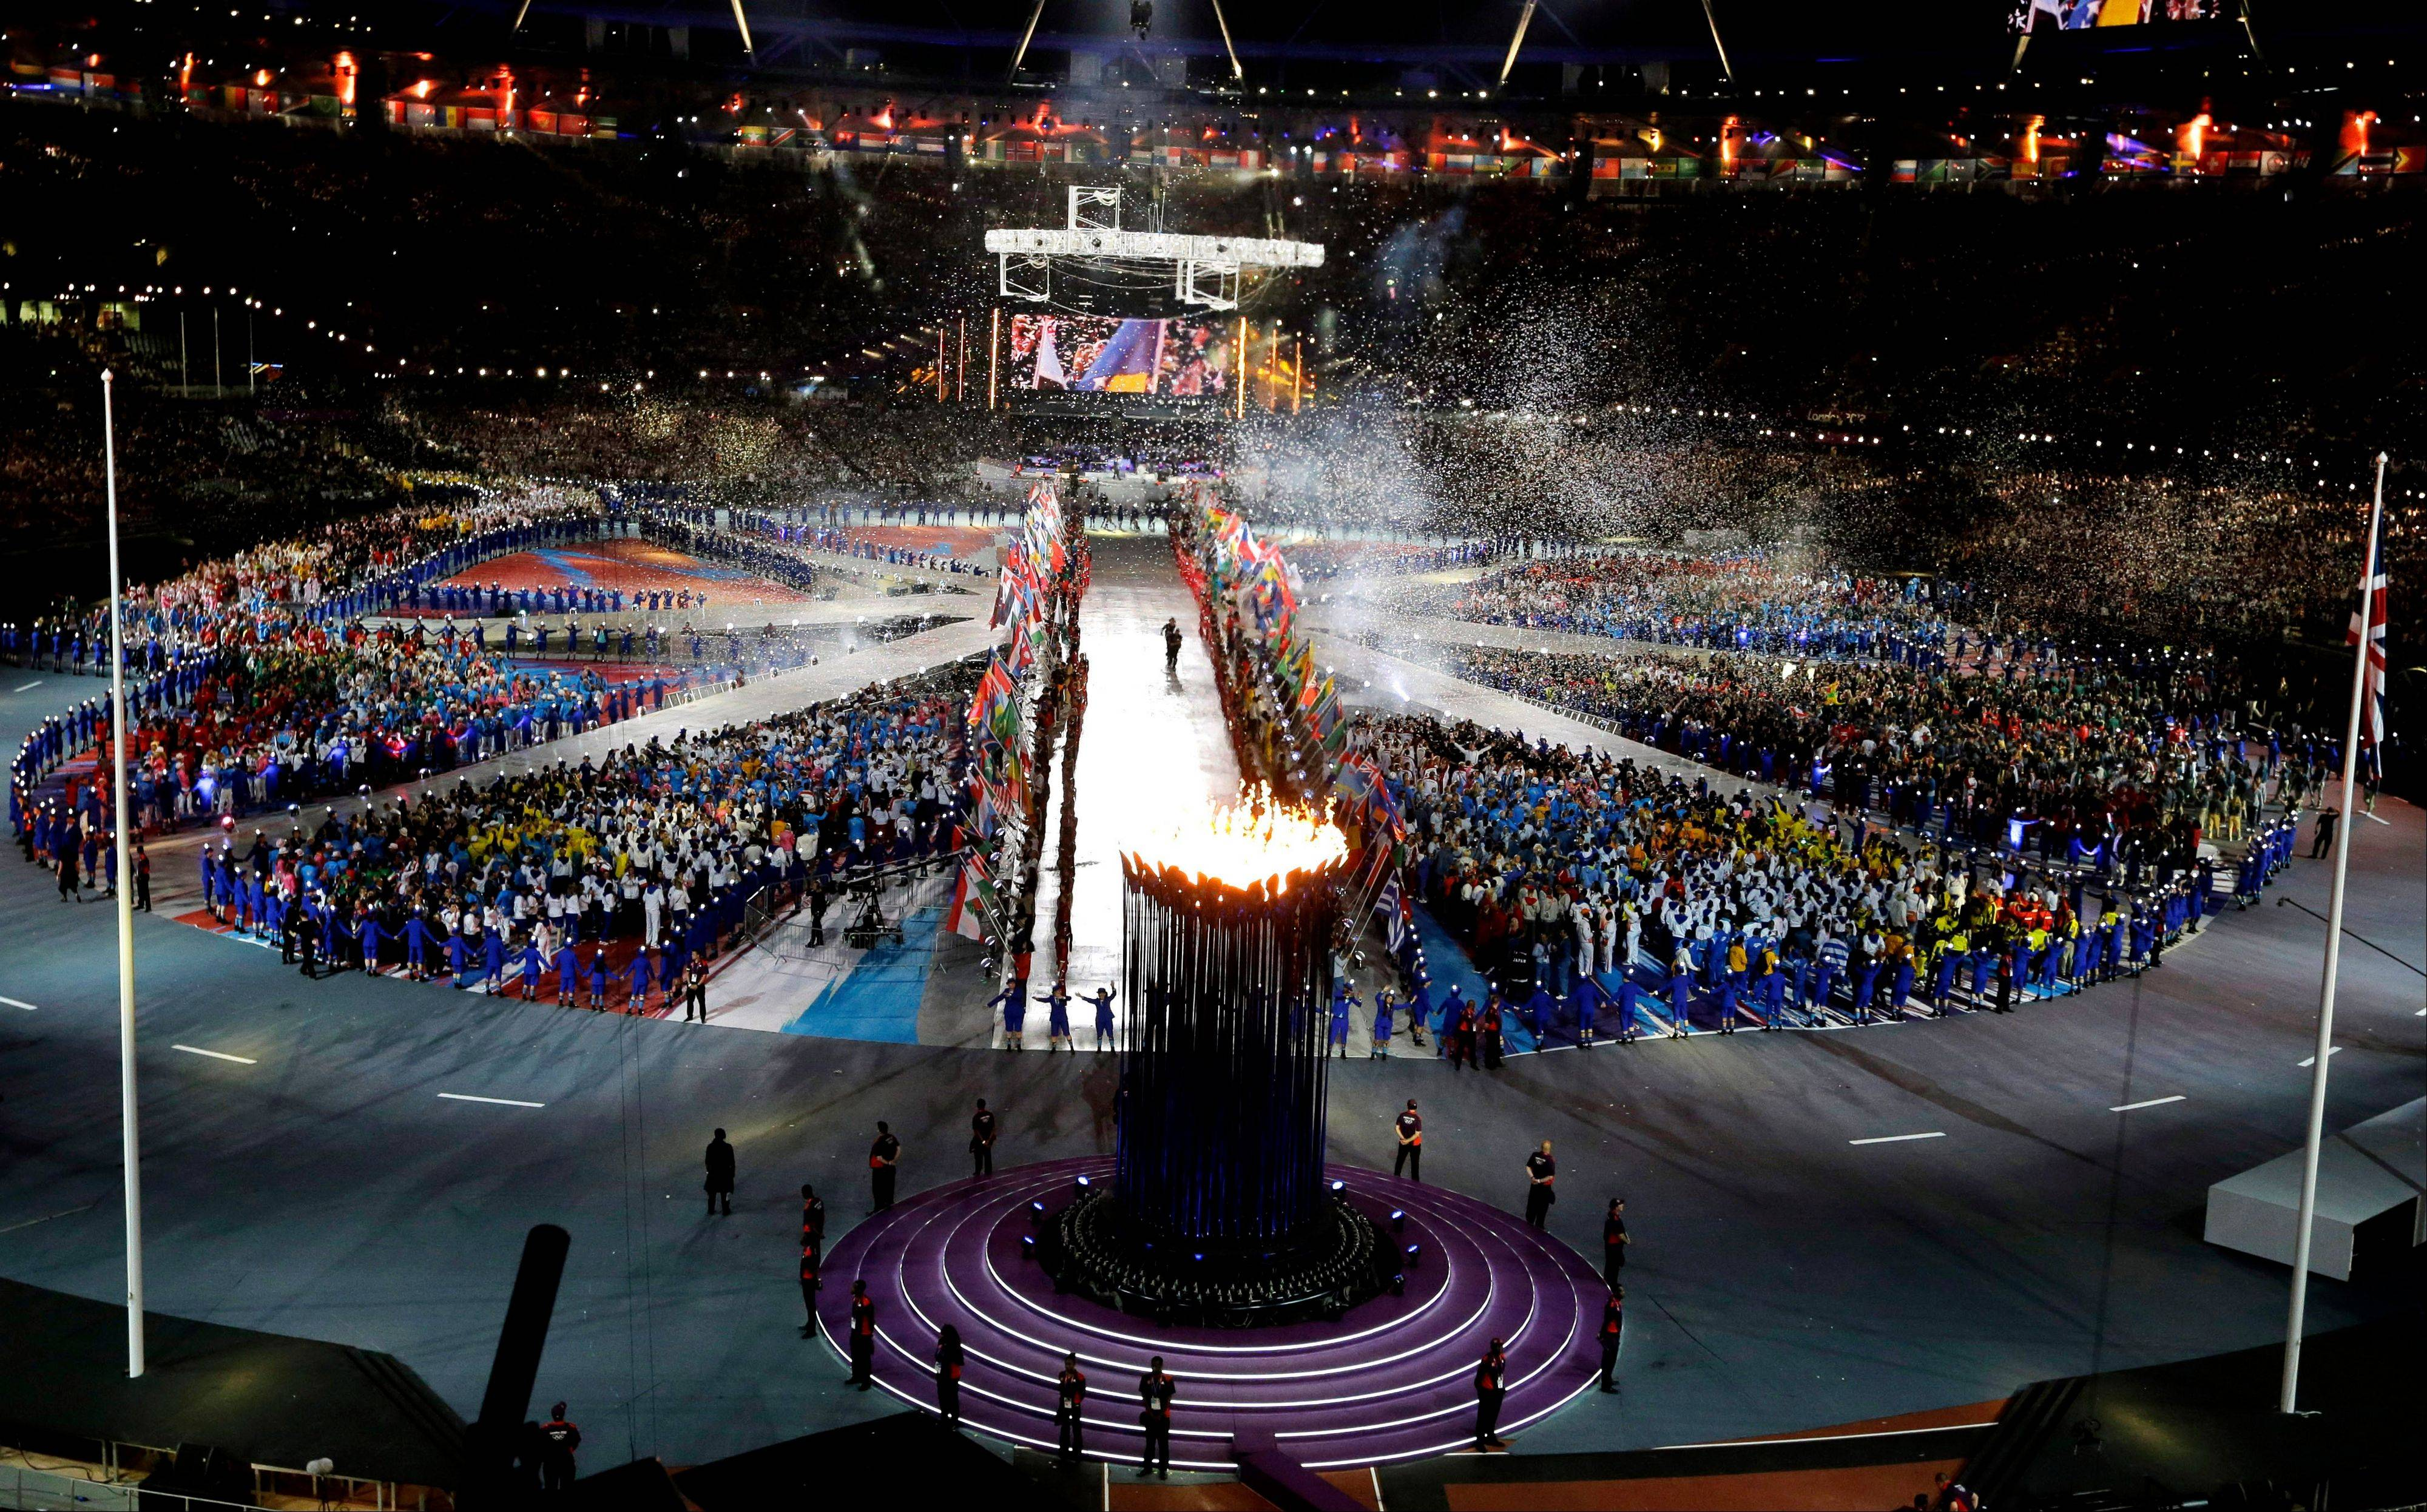 A general view of Olympic Stadium during the Closing Ceremony at the 2012 Summer Olympics.